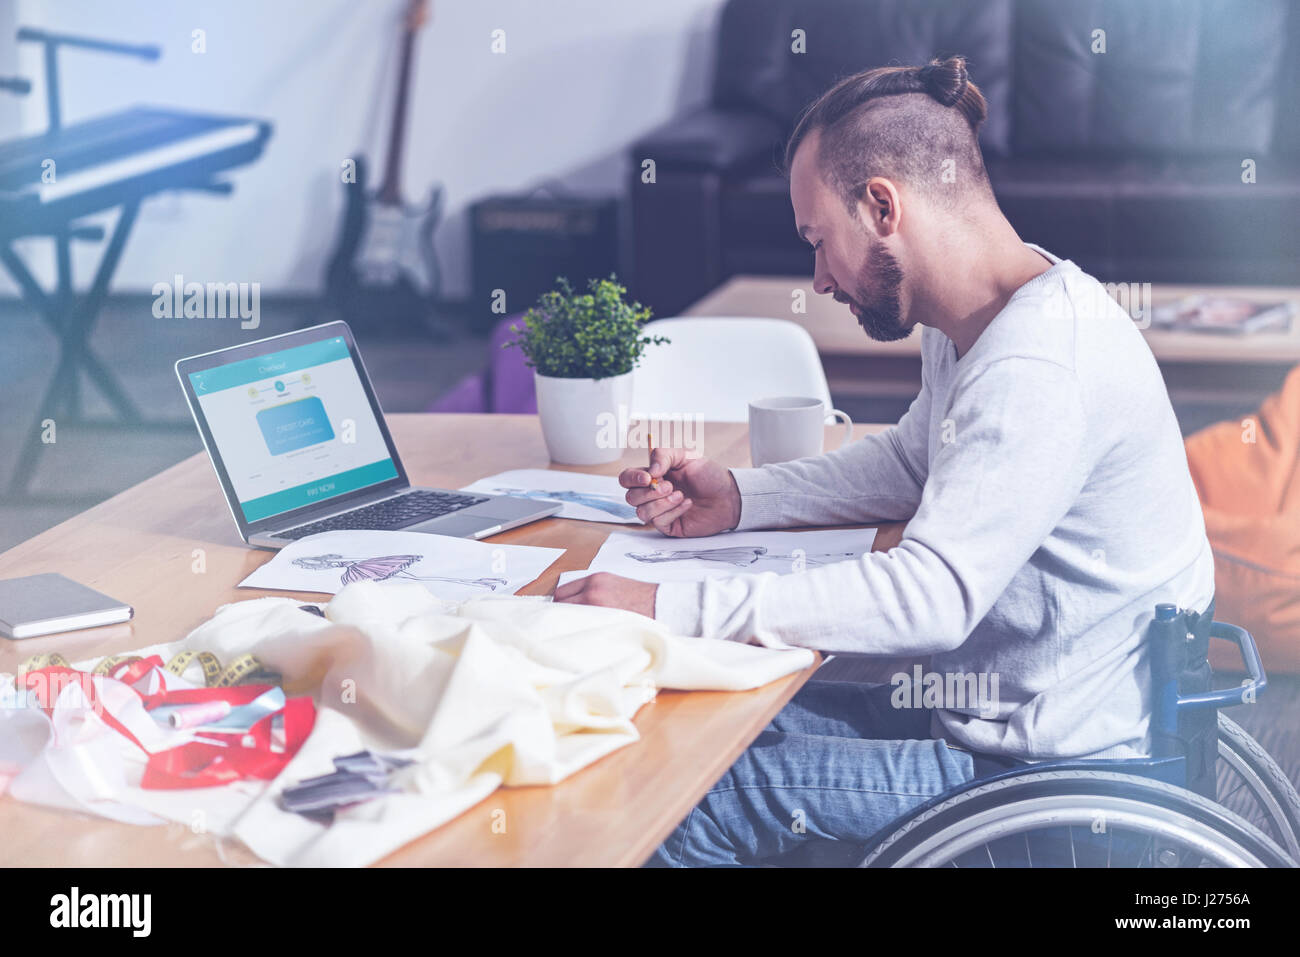 Creative young handicap designing clothes in the studio - Stock Image